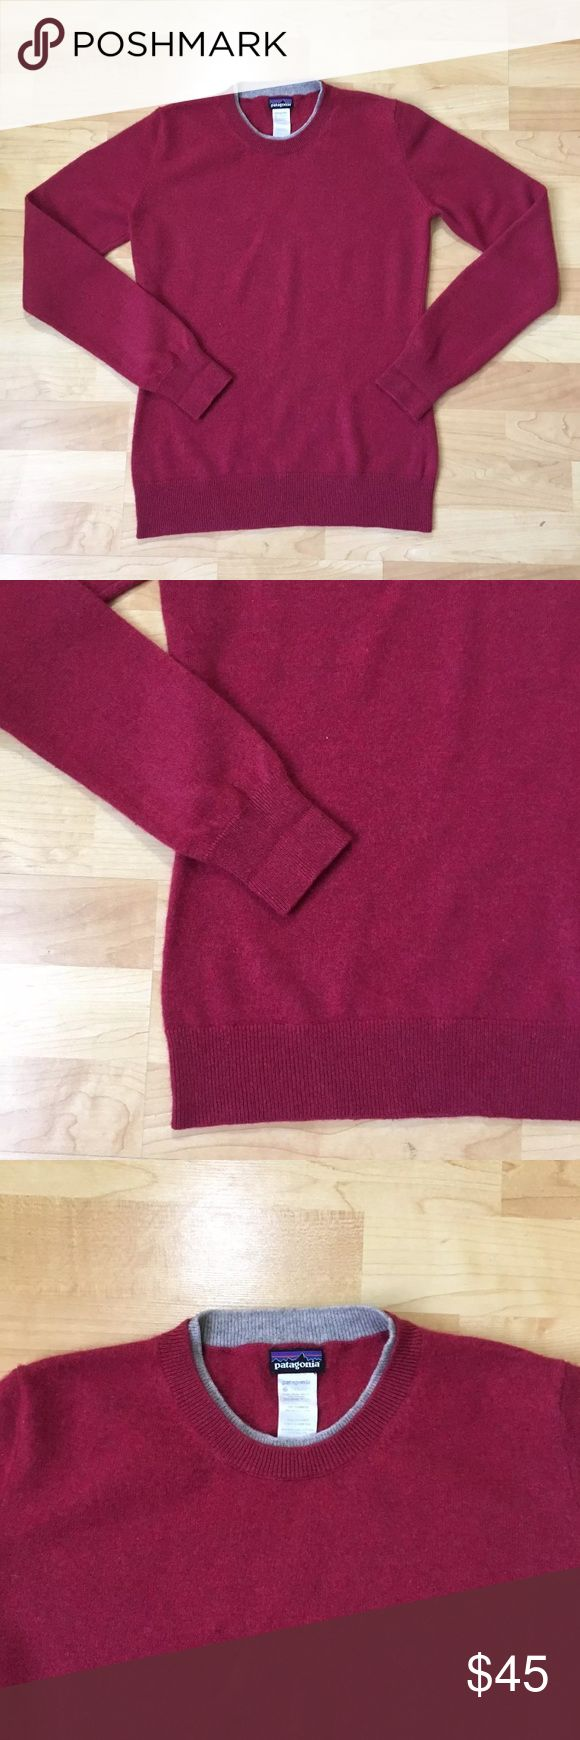 "Patagonia cashmere sweater size medium Patagonia Cashmere sweater Red maroon burgundy color Size medium Measures: Pit to pit: 18""  Length: 24"" Sleeve: 24.5""   DISCLAIMER:: Color may vary slightly depending on computer screen and fluorescent lighting. Photos were taken in natural light under shaded condition. Comes from smoke free/ pet free home. Please review my feedback and feel free to ask any questions.  Descriptions are written as honest possible and photos assist the full description…"